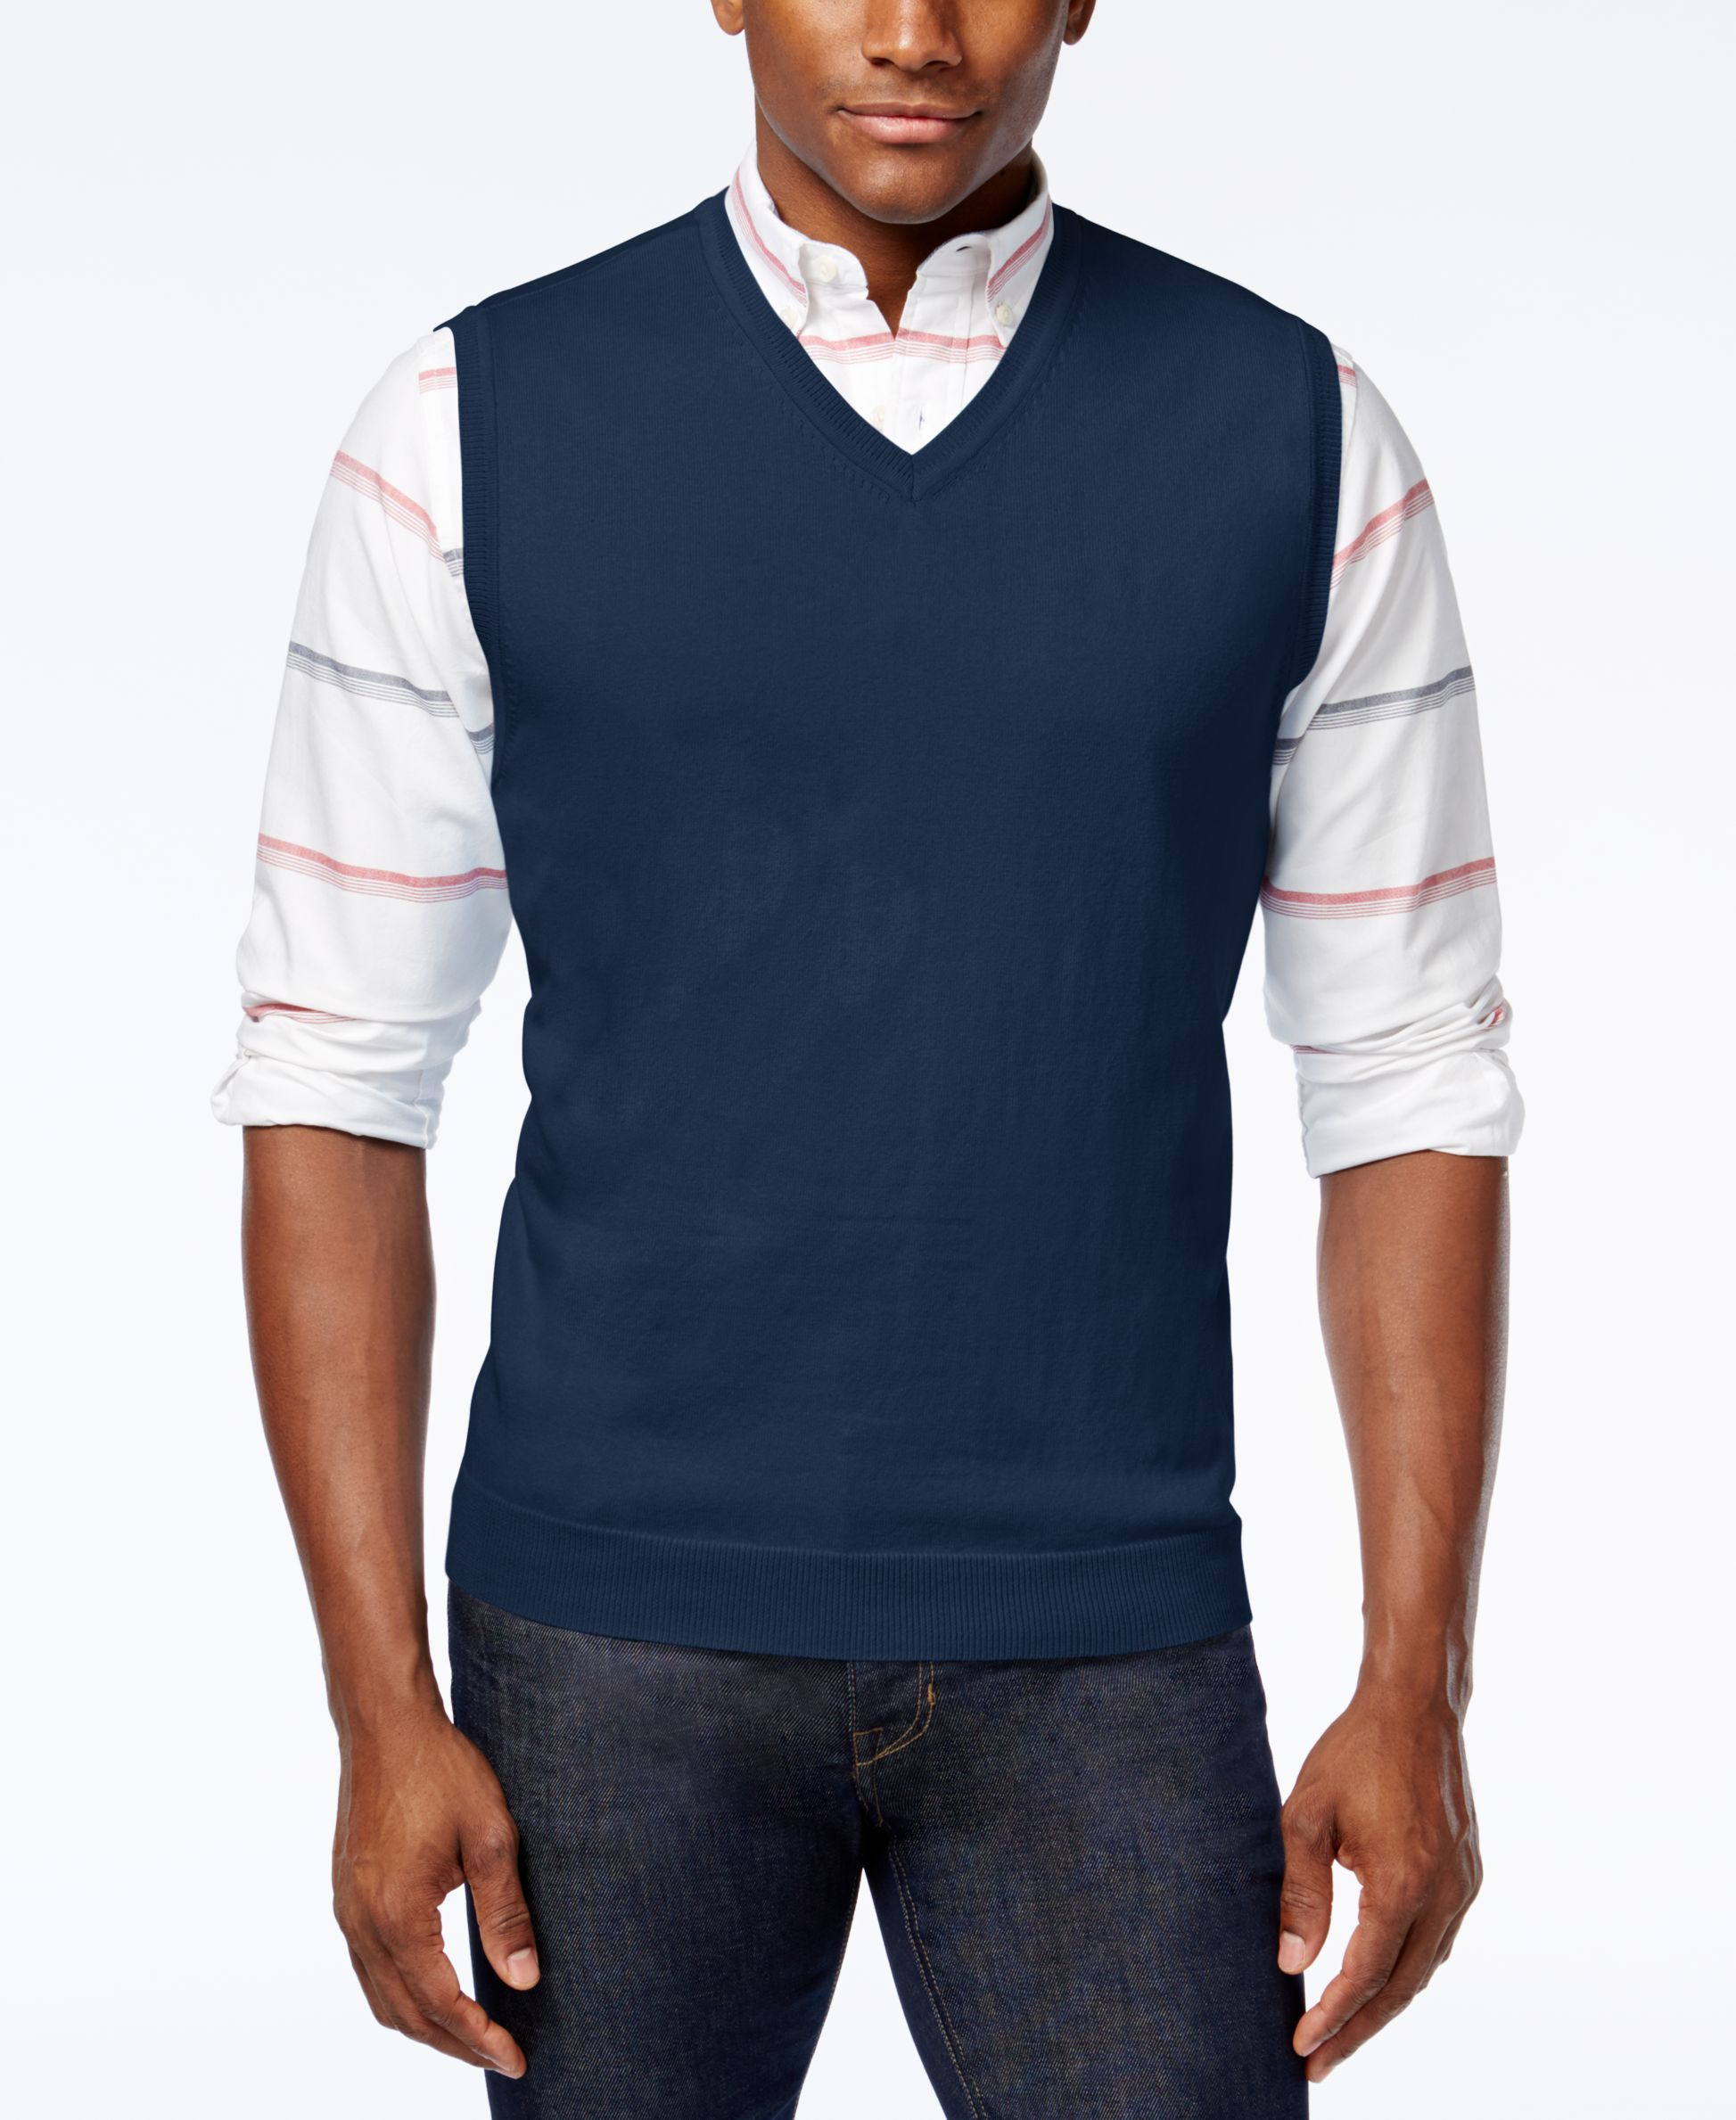 Club Room Men's Cotton Sweater Vest, Only at Macy's | Products ...